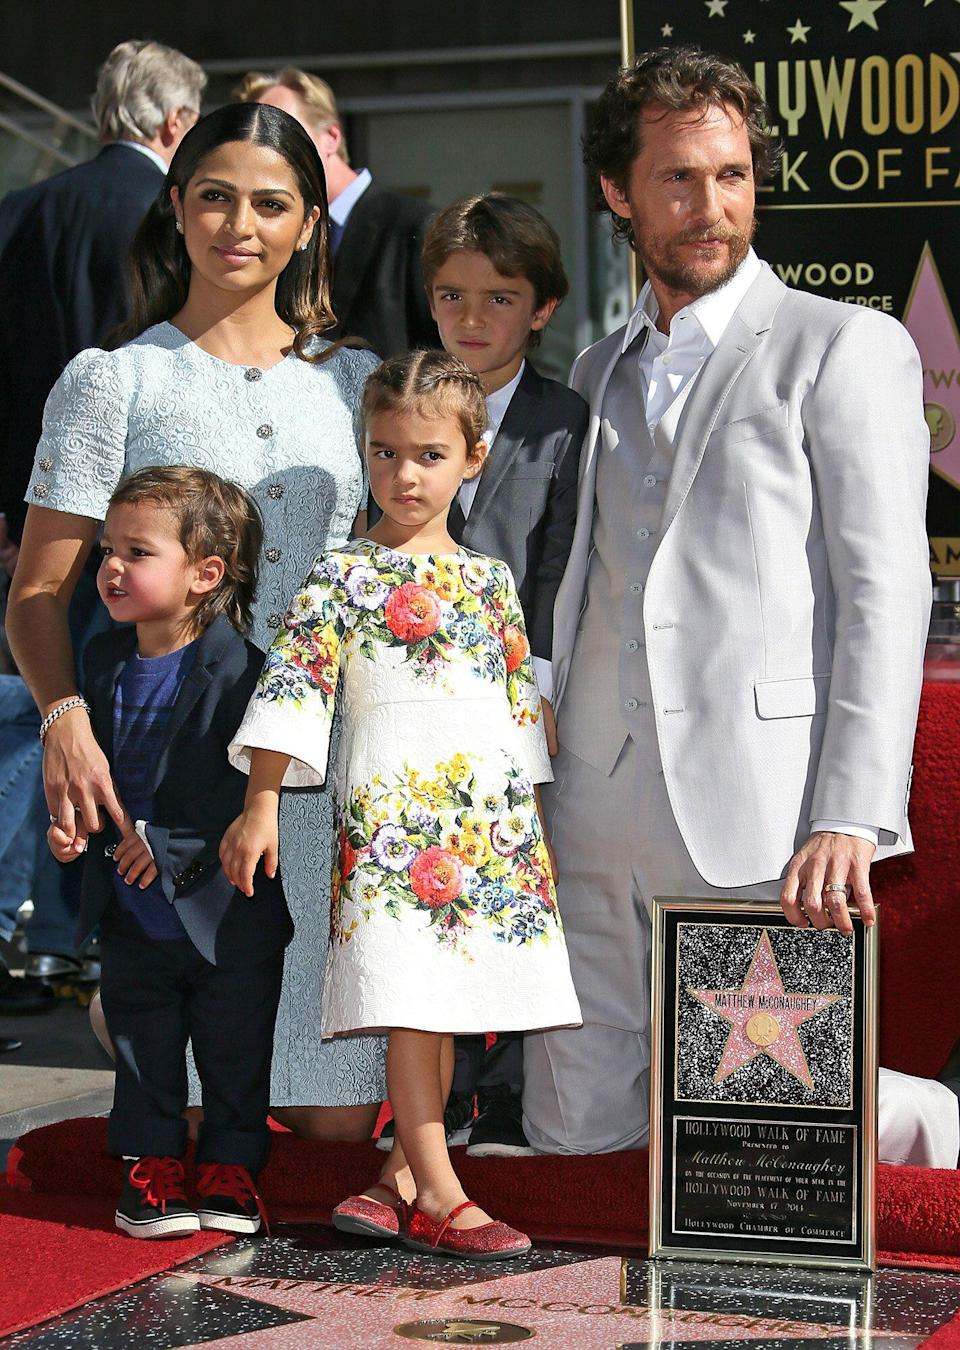 Matthew McConaughey Honored With Star On The Hollywood Walk Of Fame